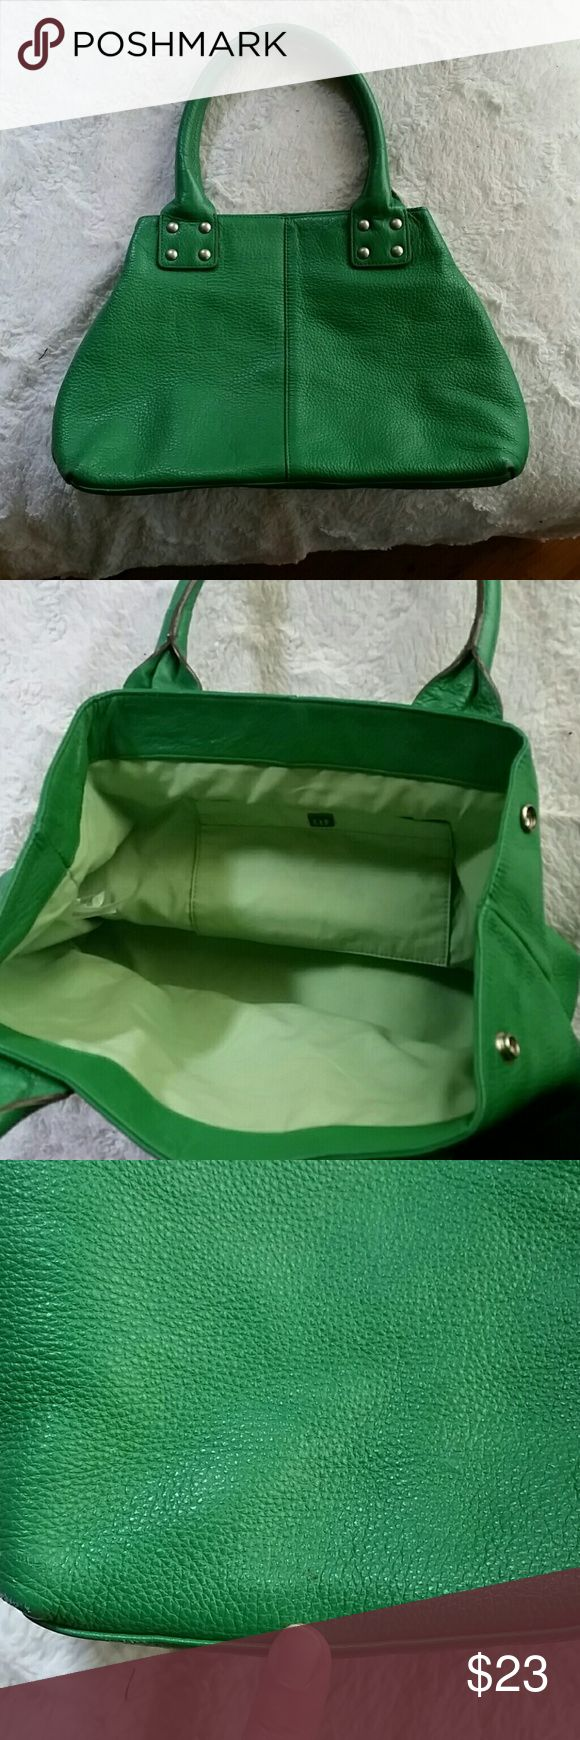 Leather GAP bag Pre-loved leather GAP bag. Such a fun color for spring-summer! Great condition. Tiny (barely noticeable) scuff as seen in last picture. GAP Bags Totes